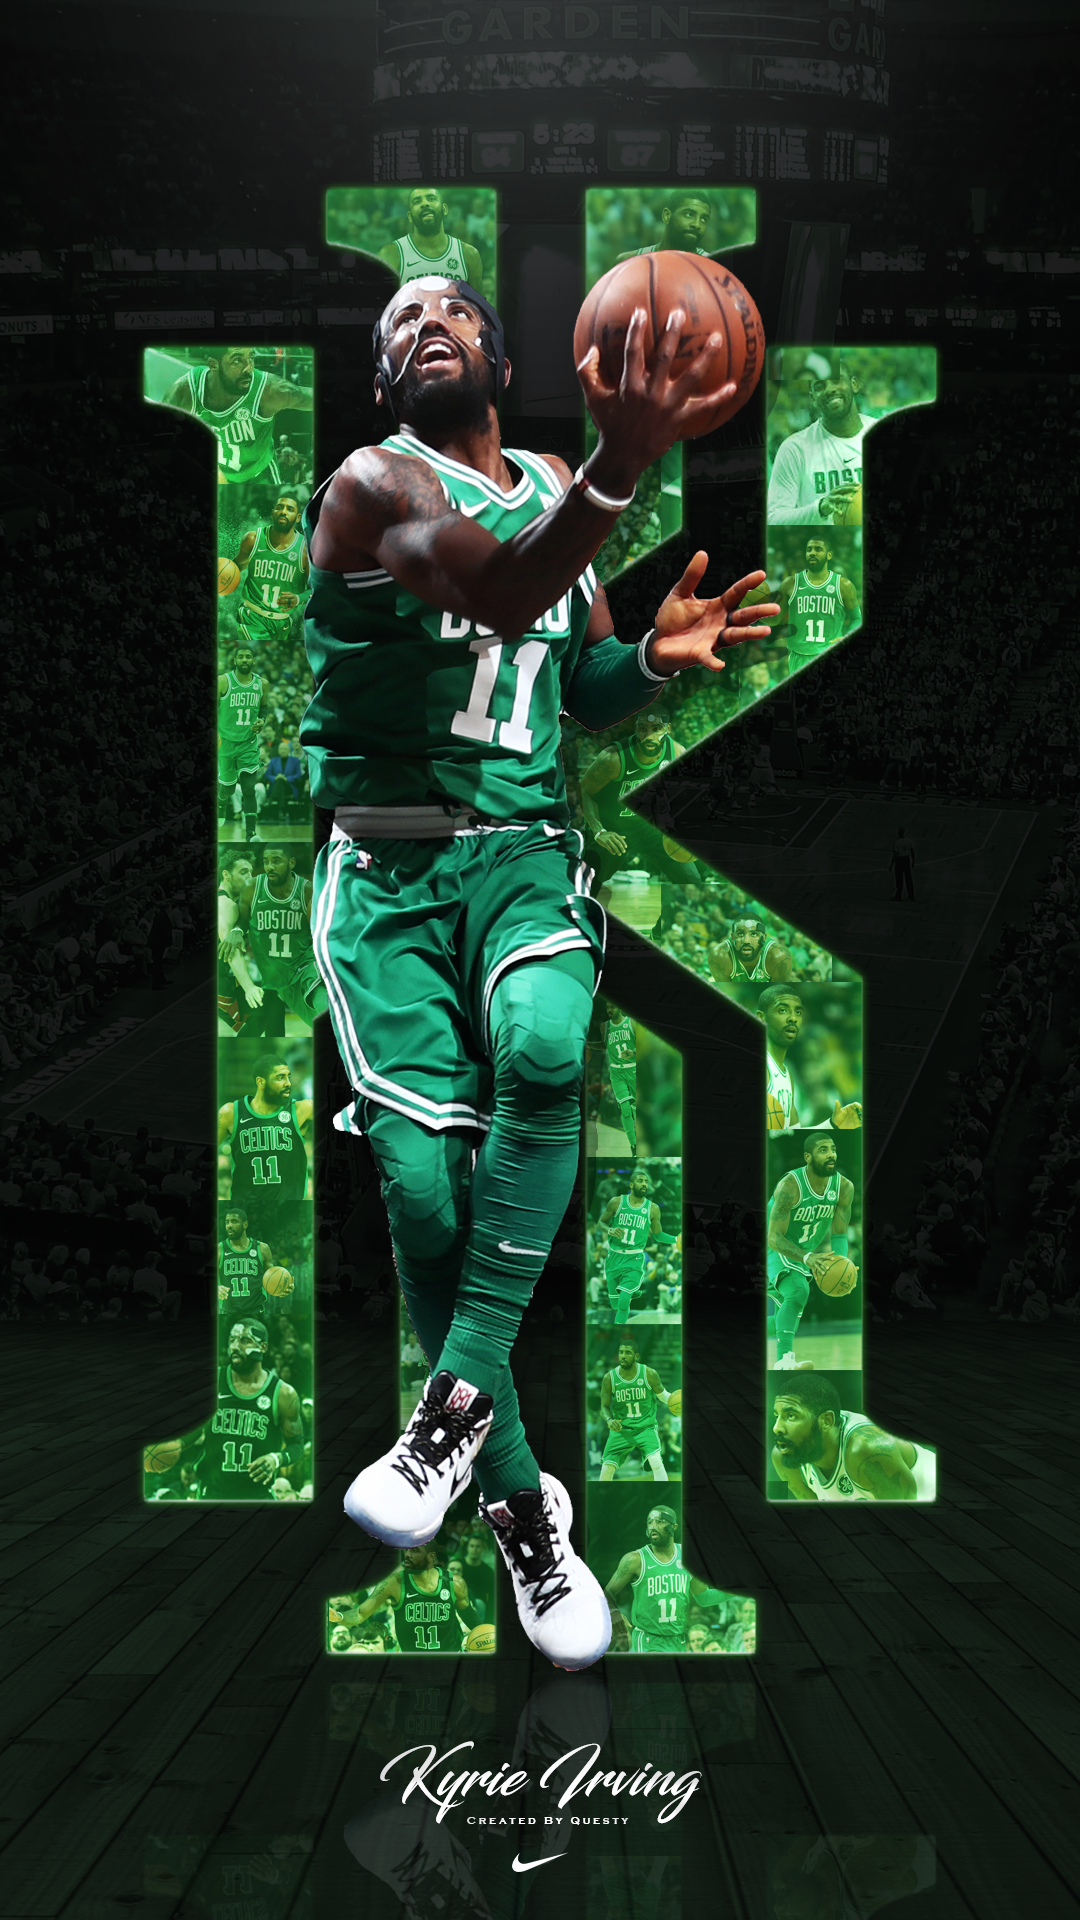 Kyrie Irving Celtics Iphone Wallpaper Created By Questytv On